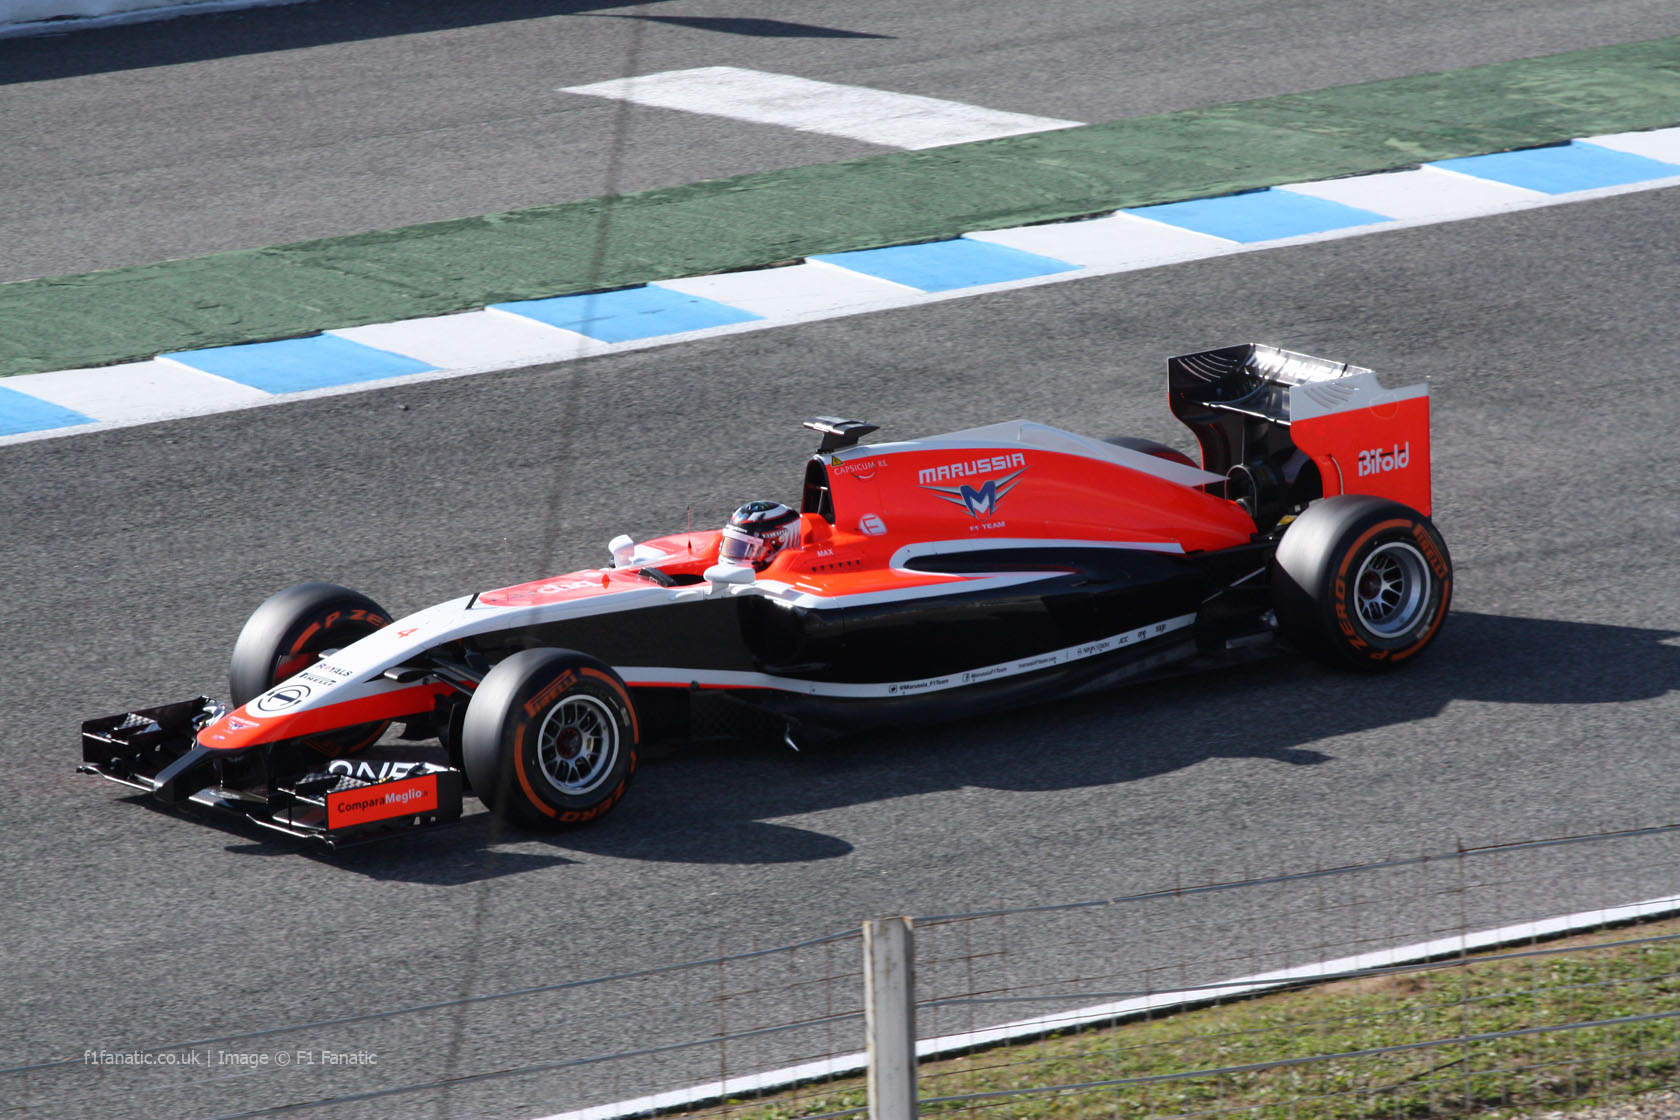 CAR: By The Way, Marussia F1 Still Exists, Automotifblog.com